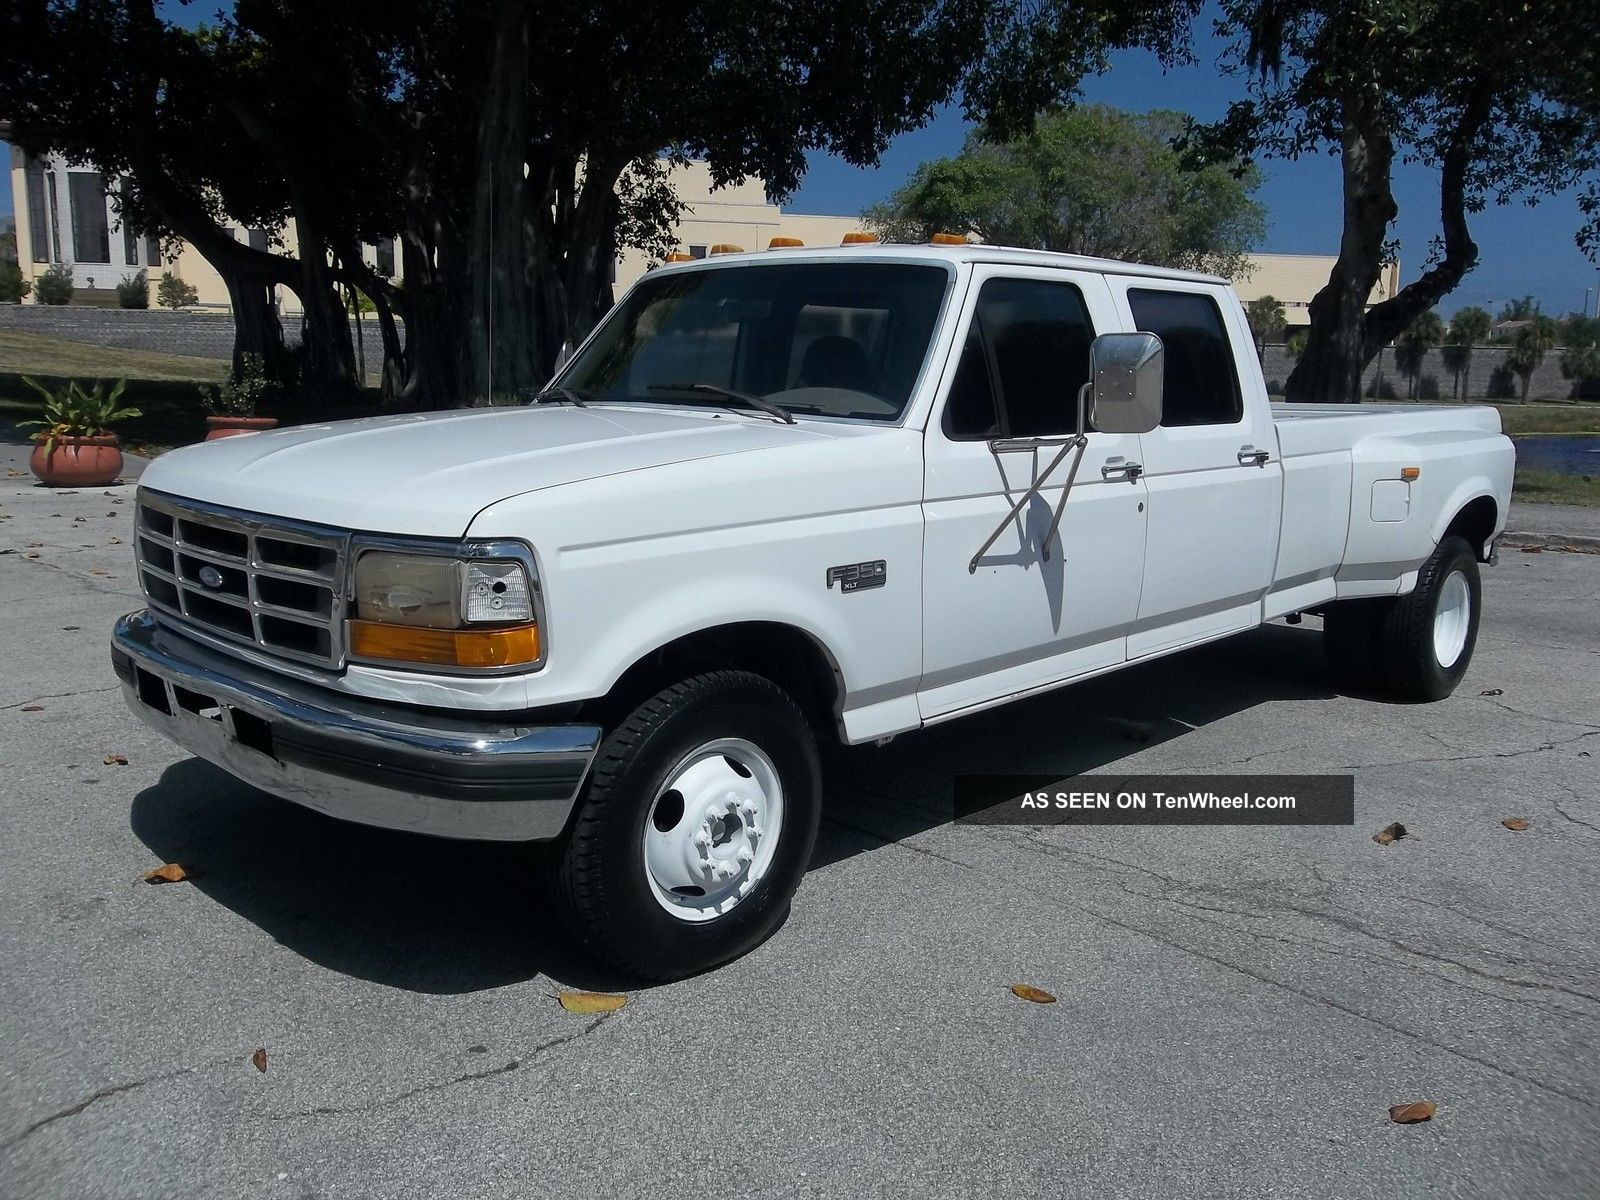 1997 ford f350 crewcab longbed dually 5th wheel. Black Bedroom Furniture Sets. Home Design Ideas